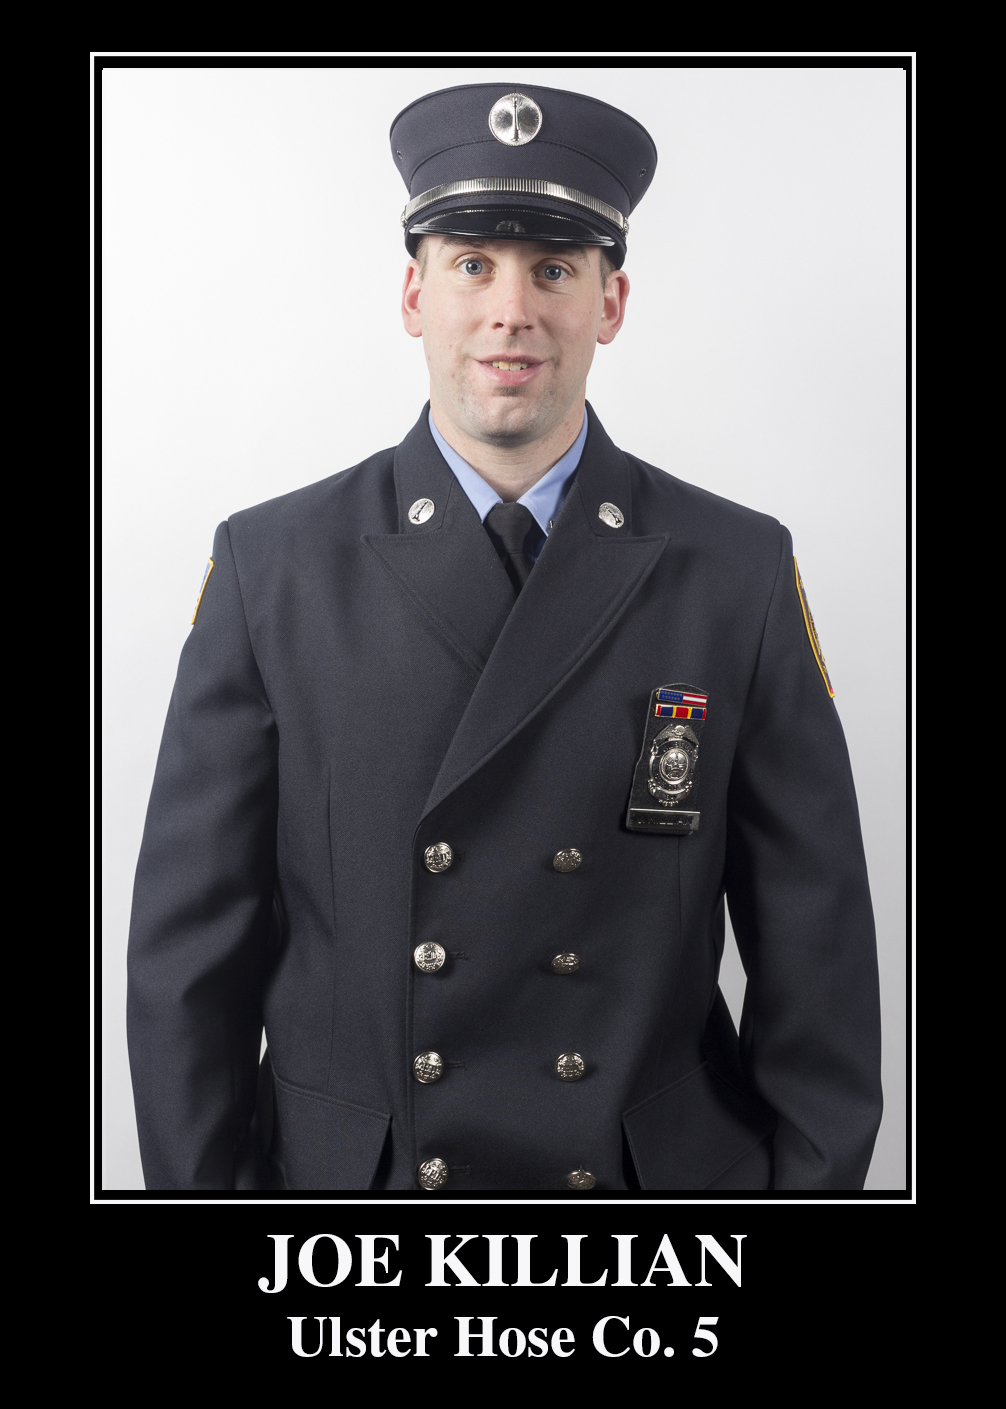 Lt. Joseph Killian